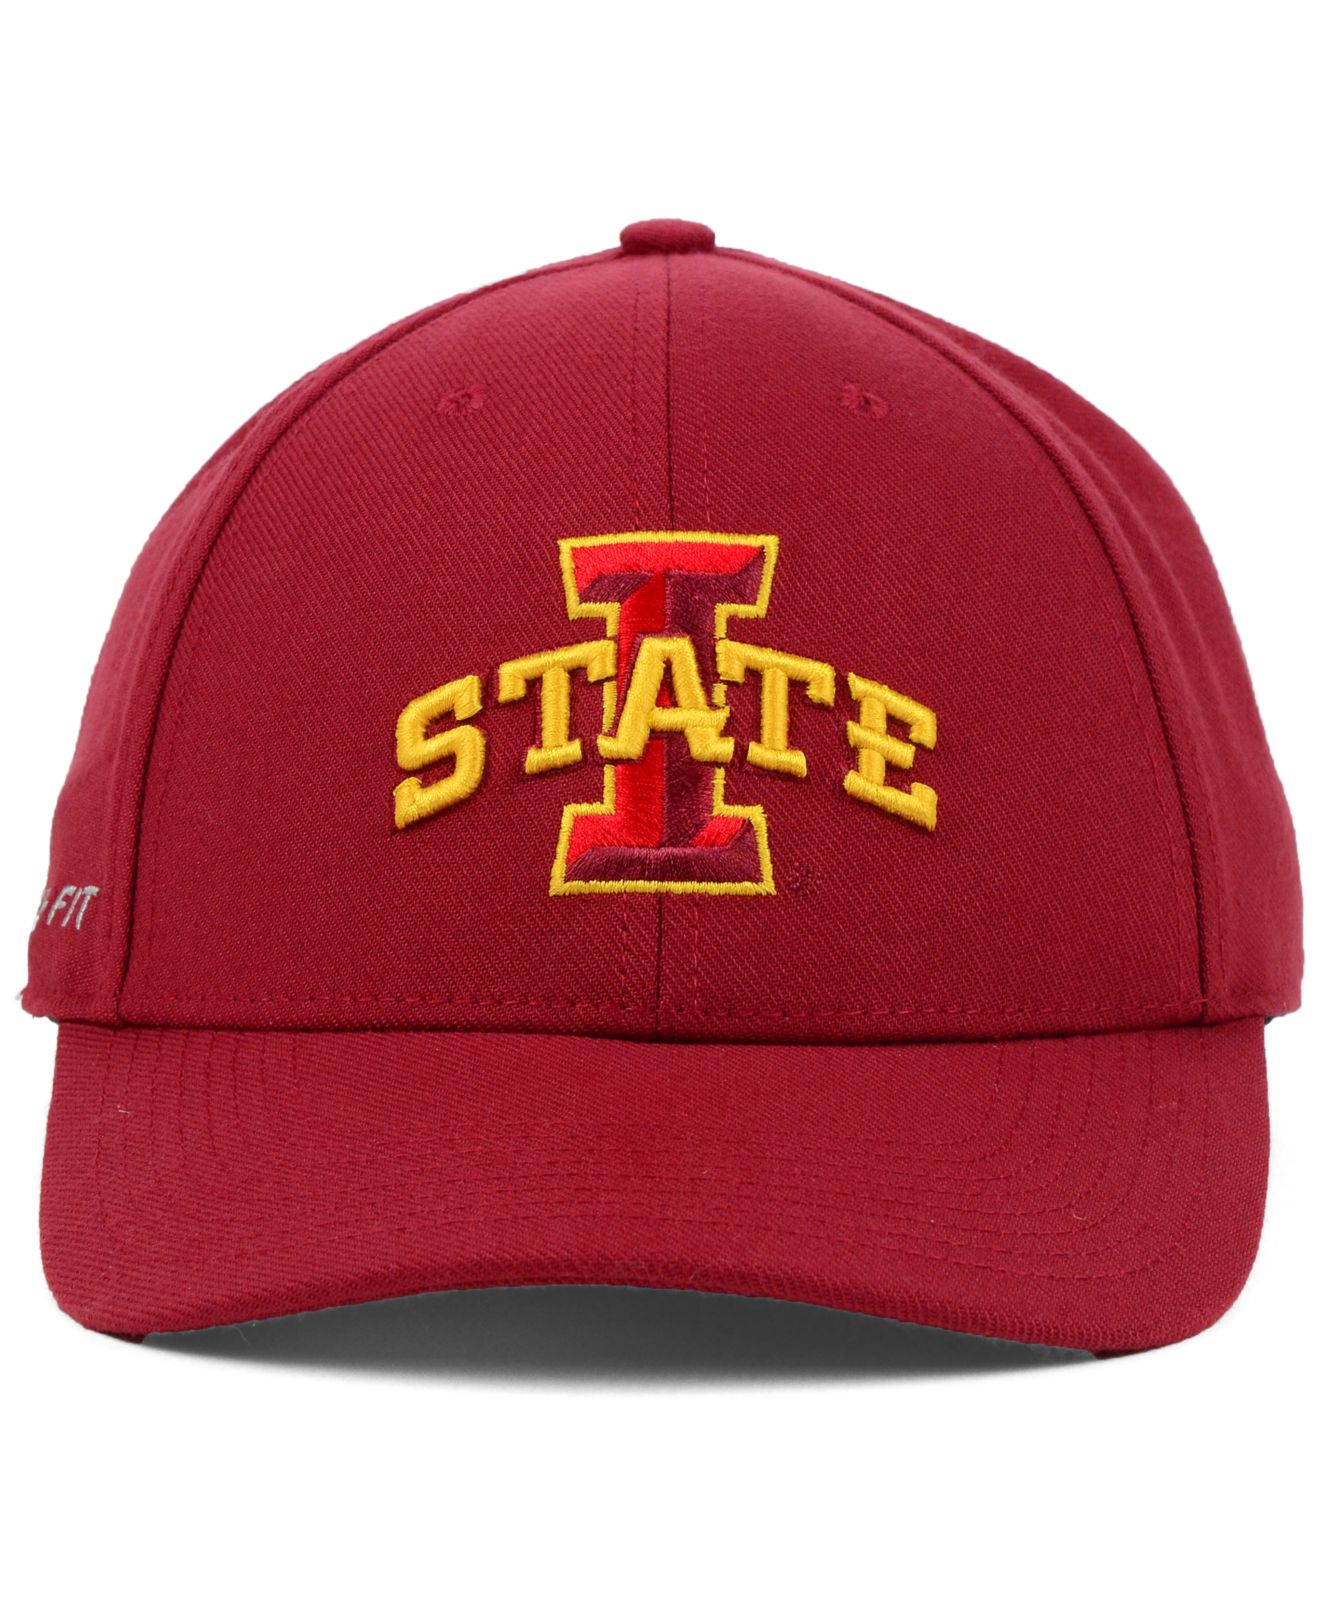 official photos 32a70 980ab free shipping lyst nike iowa state cyclones dri fit swooshflex cap in red  for men c02d3